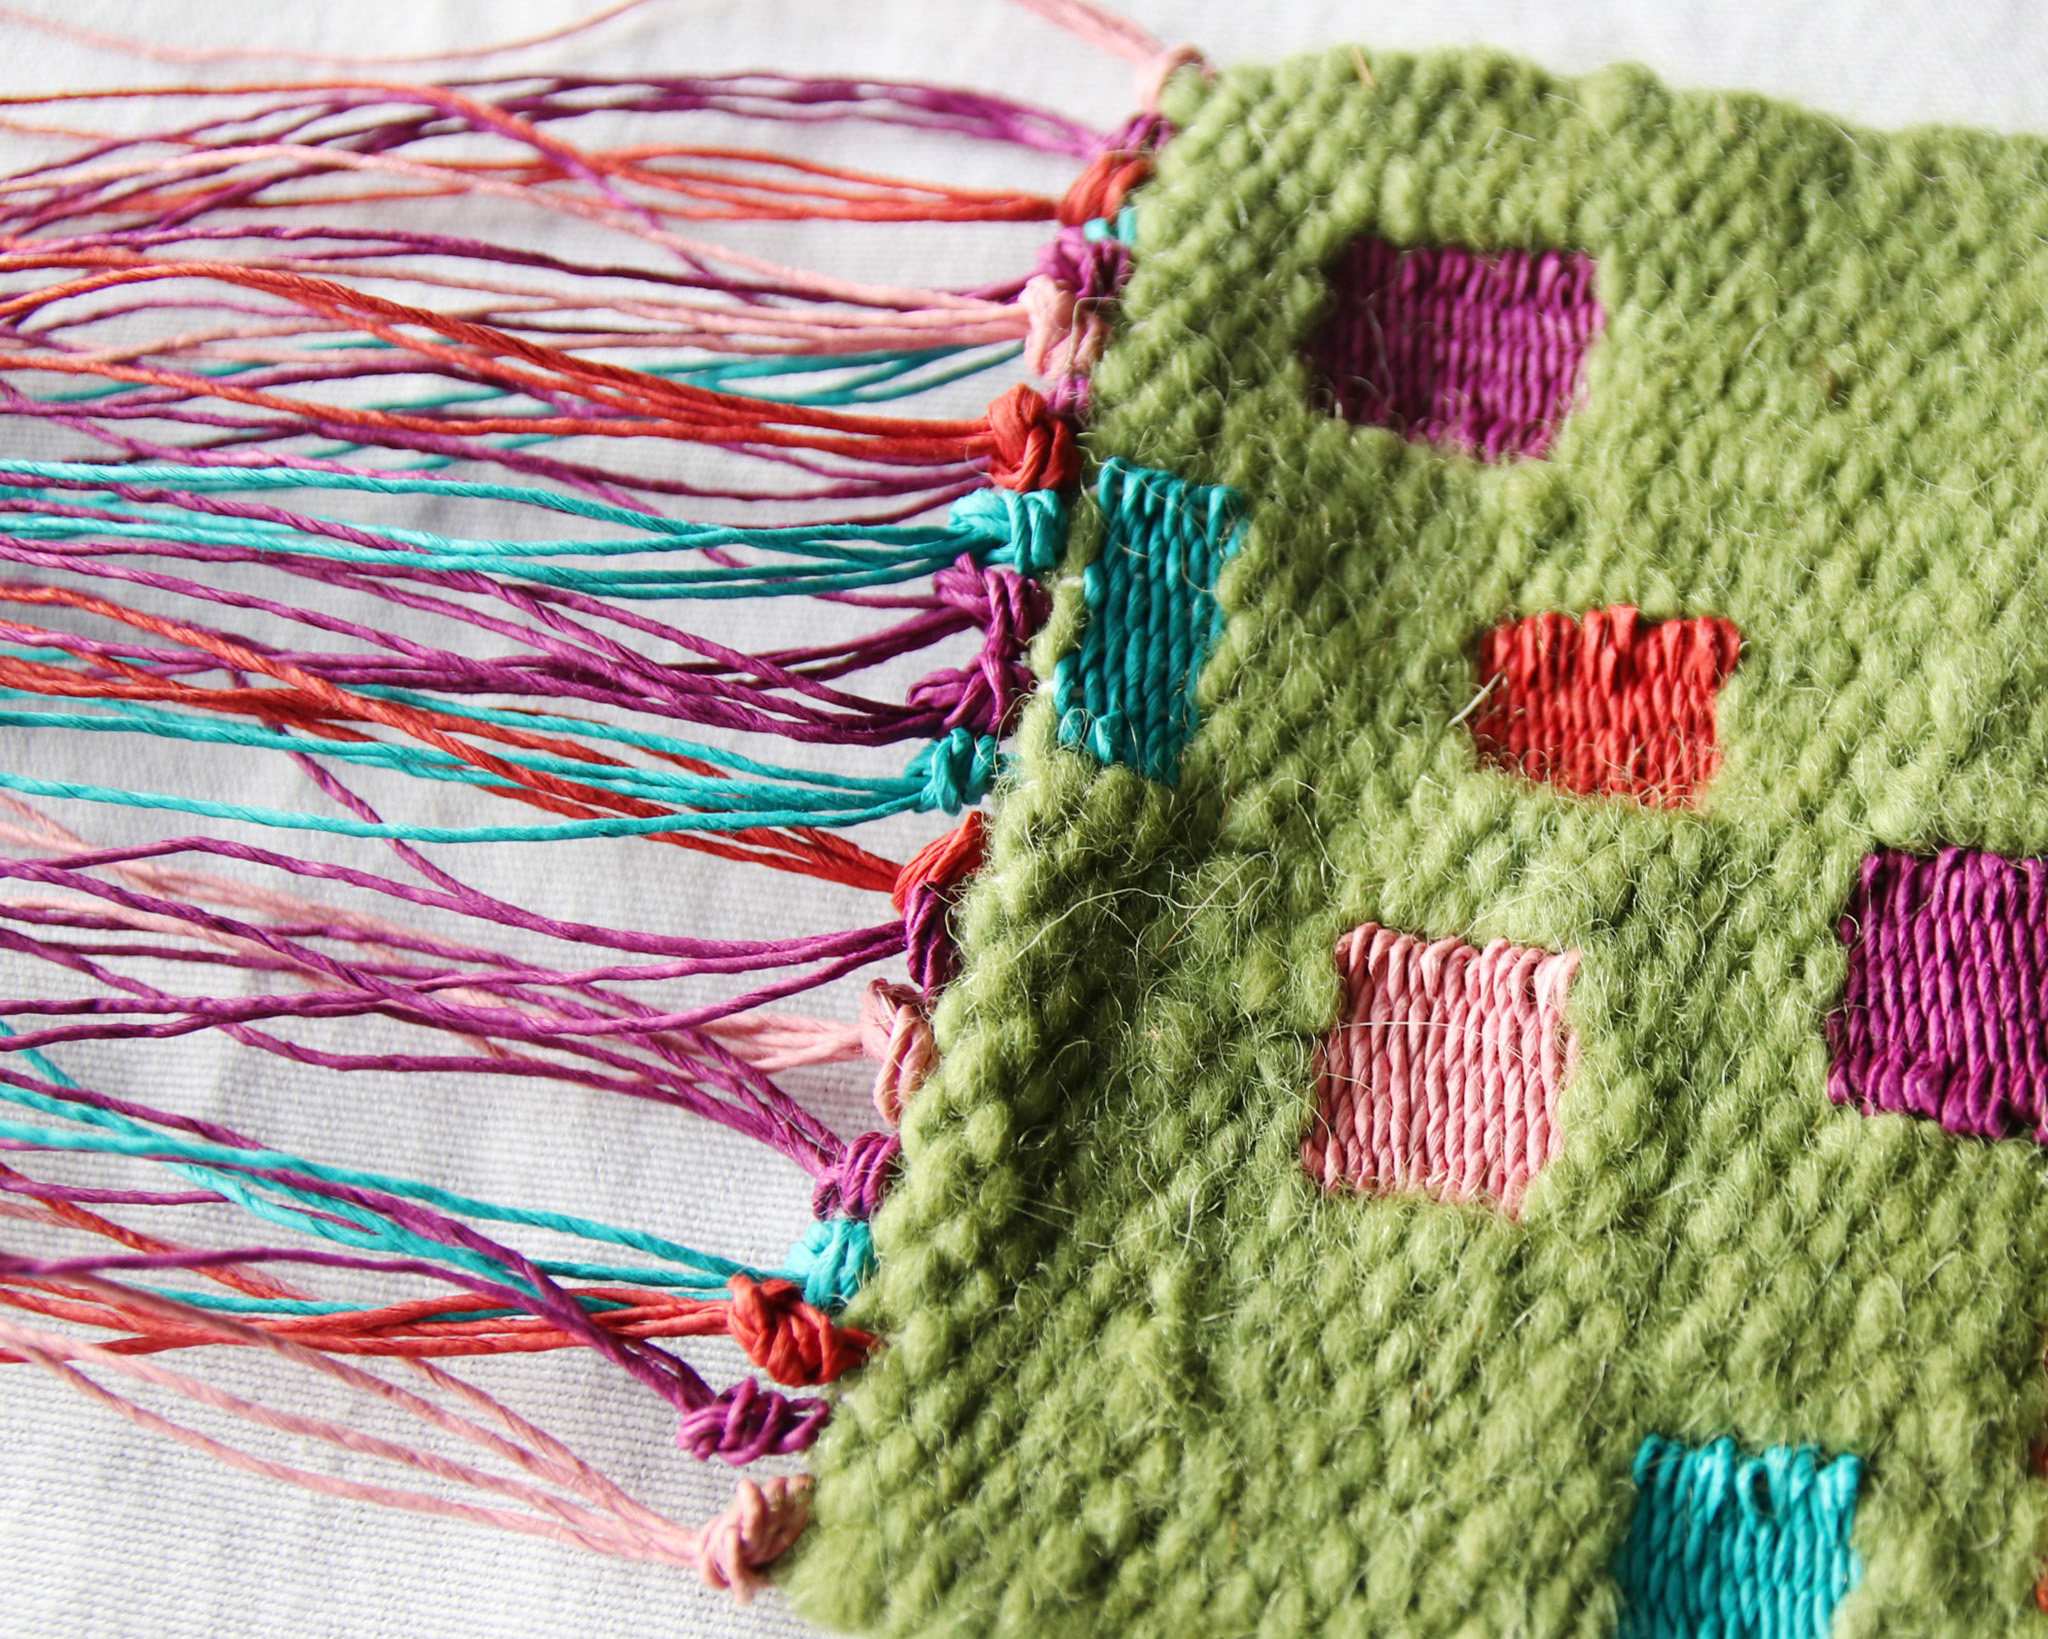 Tapestry Weaving on a Mirrix Loom with Claudia Chase